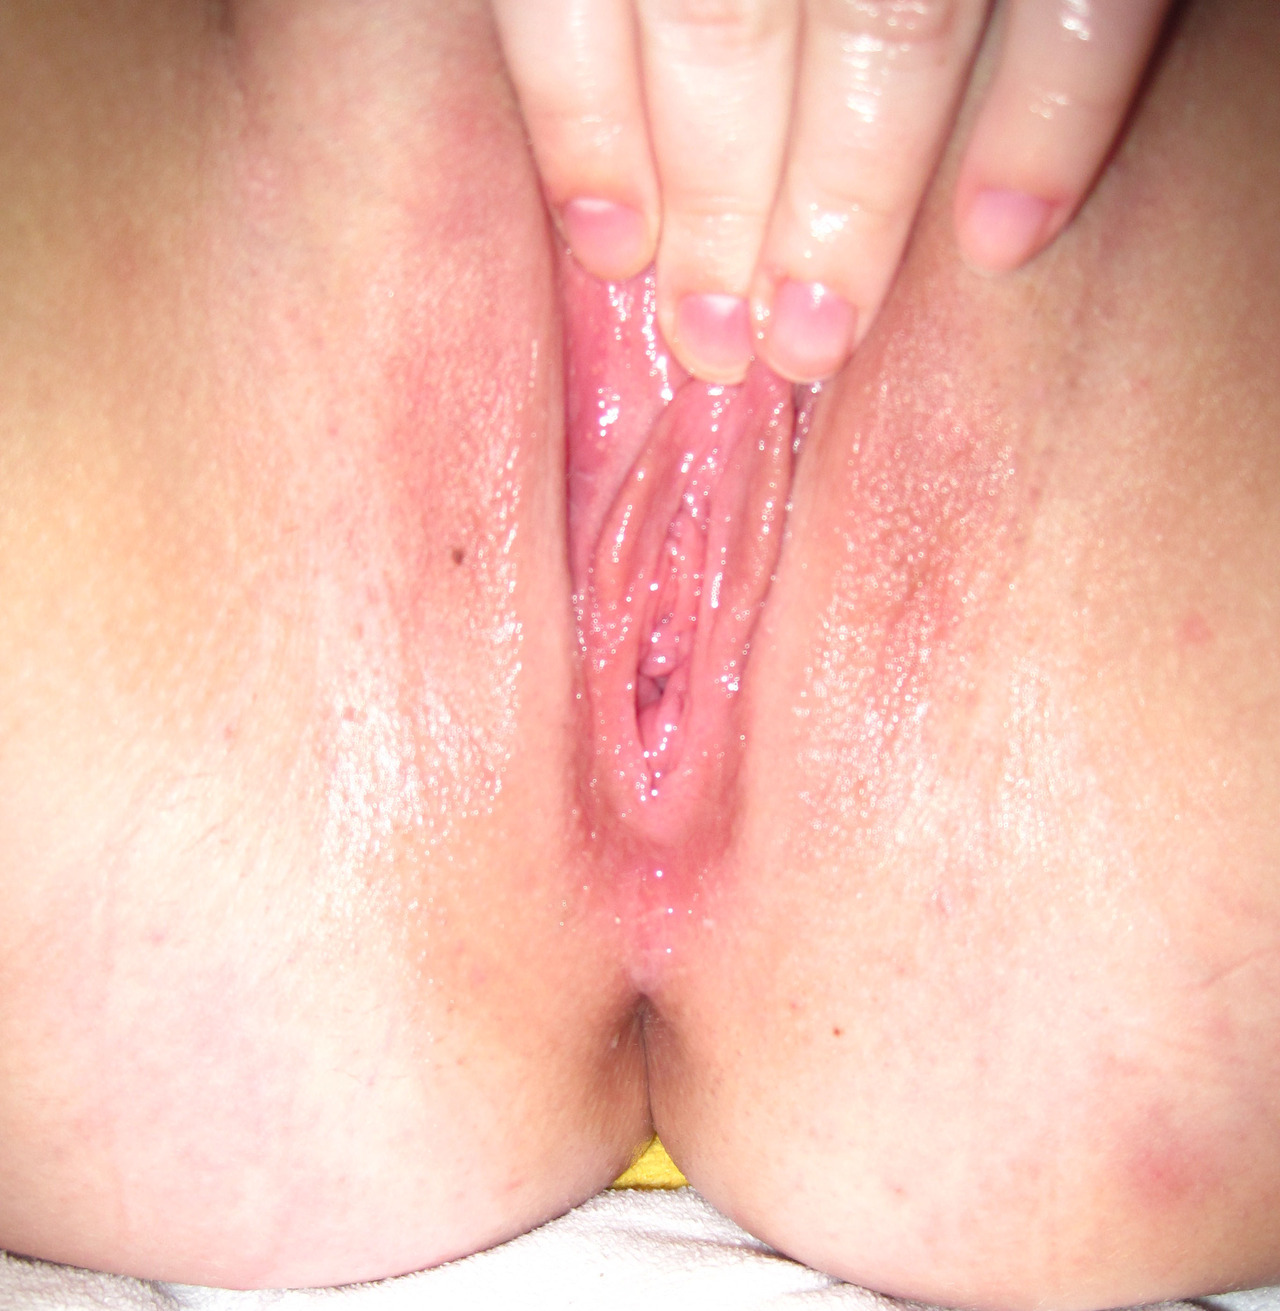 http://exposedontheinterwebs.tumblr.com/ Ohhhhh I love a soaked pussy………..